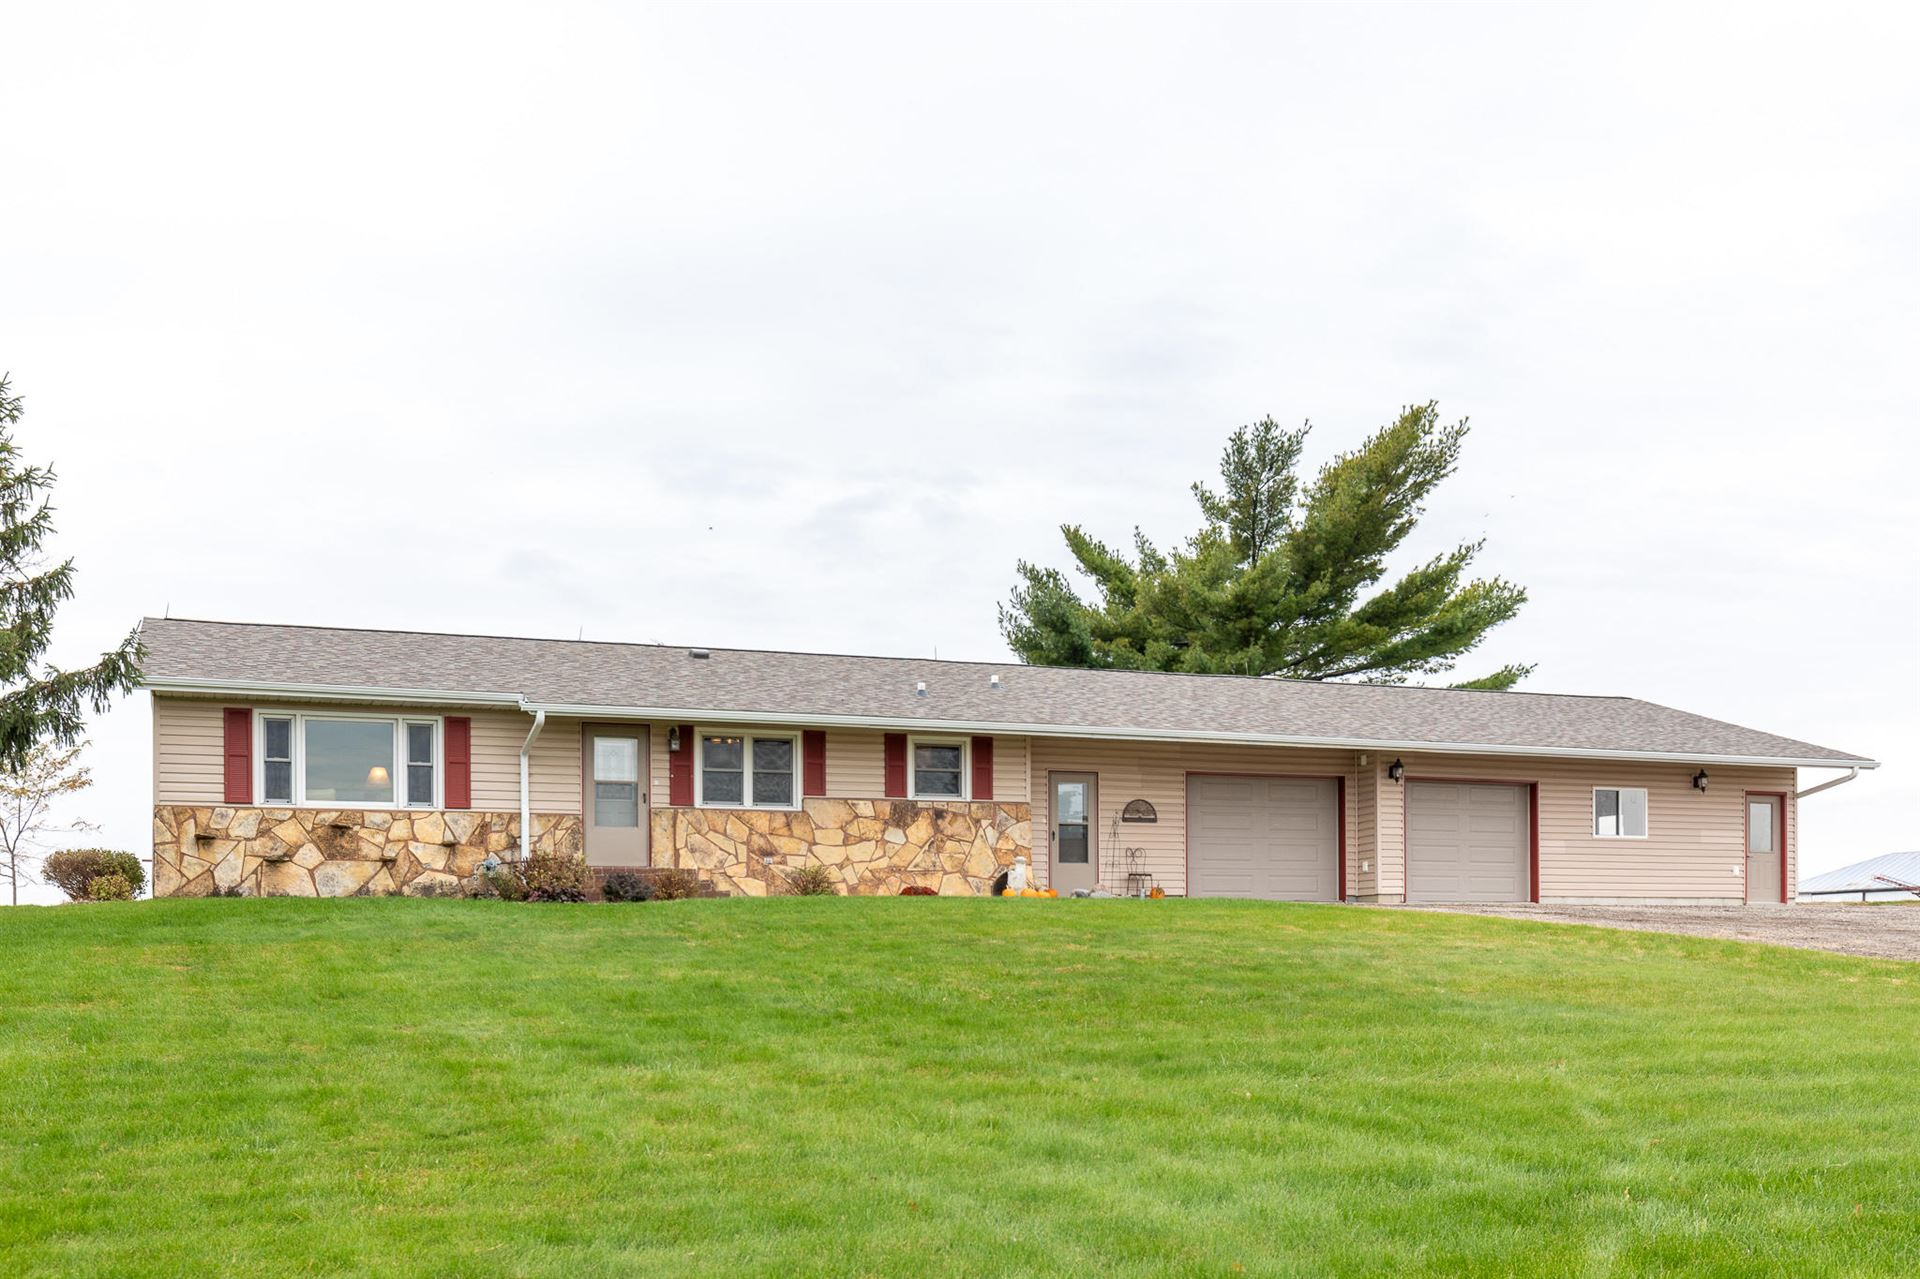 N6613 County Road XX, Holland, WI 54636 - MLS#: 1716010